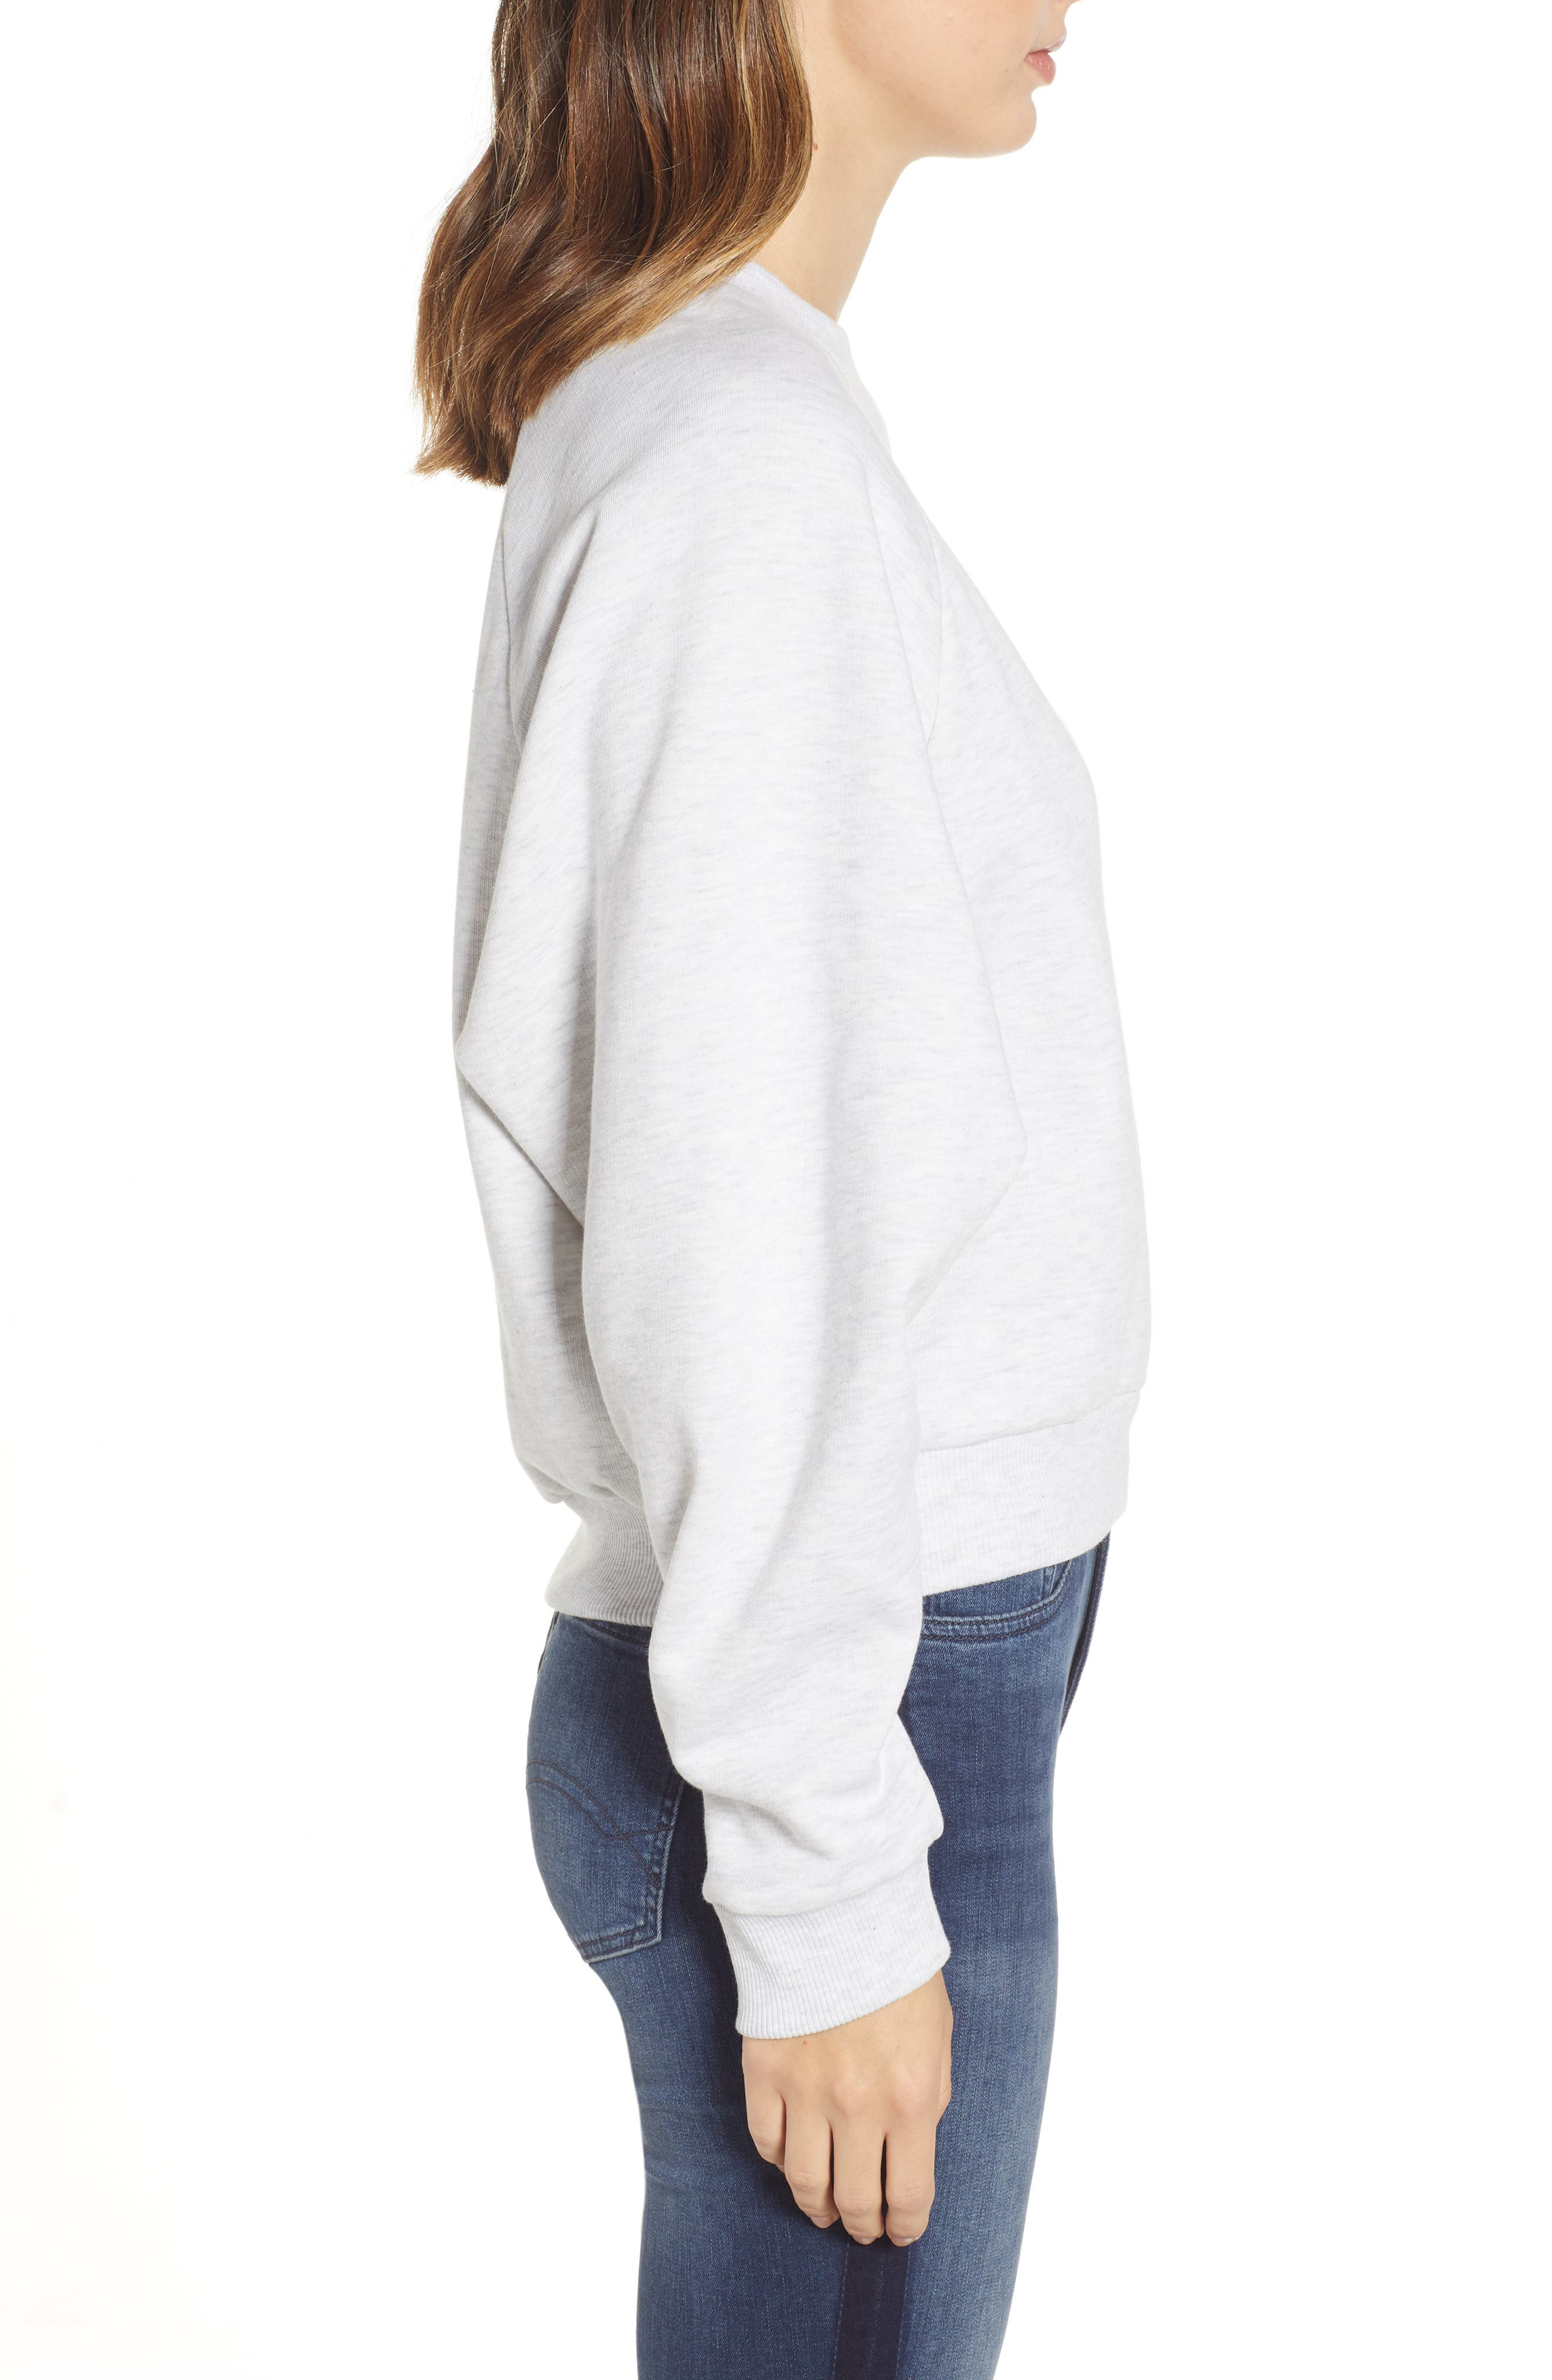 TJW Raglan Sweatshirt,                             Alternate thumbnail 3, color,                             PALE GREY HEATHER